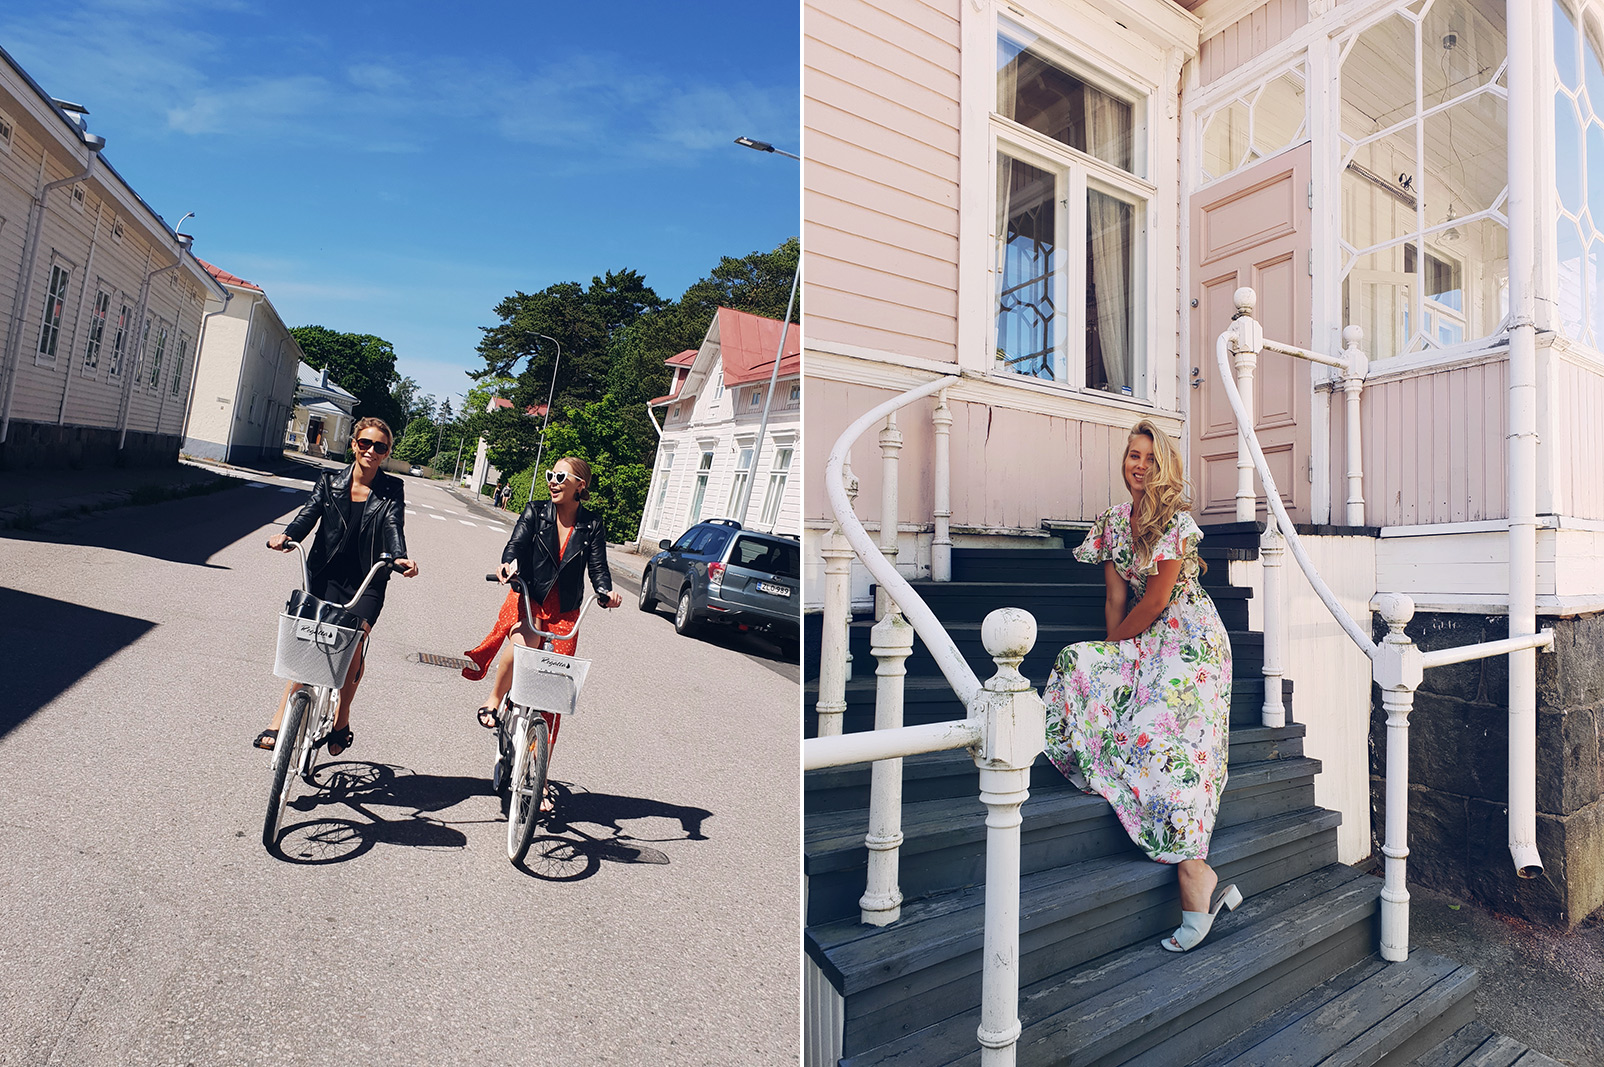 Today in Hanko…